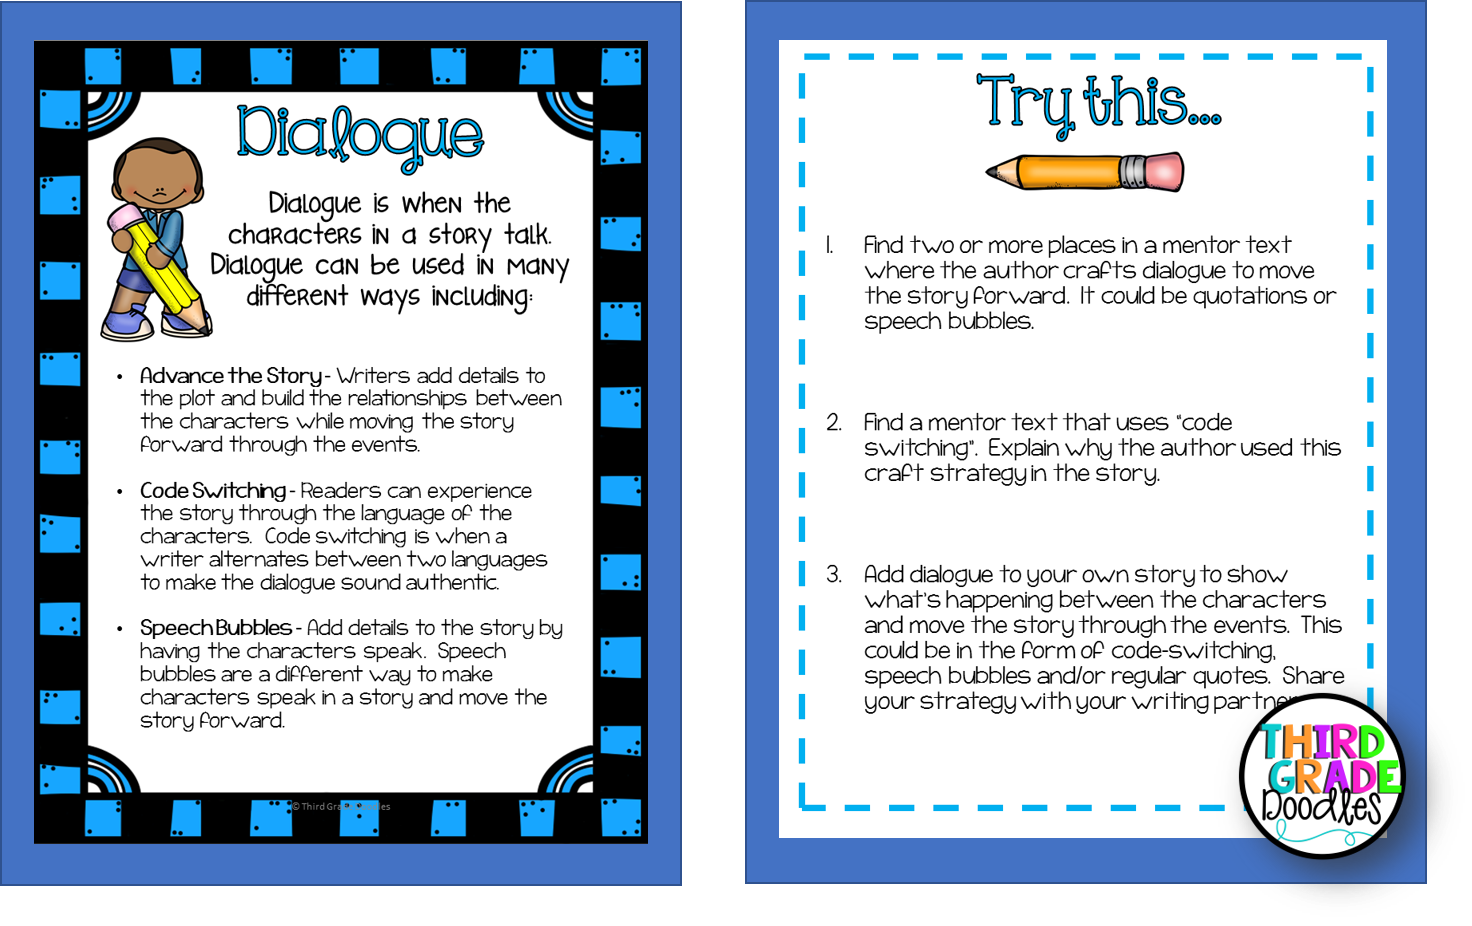 hight resolution of Teaching Personal Narrative Writing - Step By Step! - Third Grade Doodles